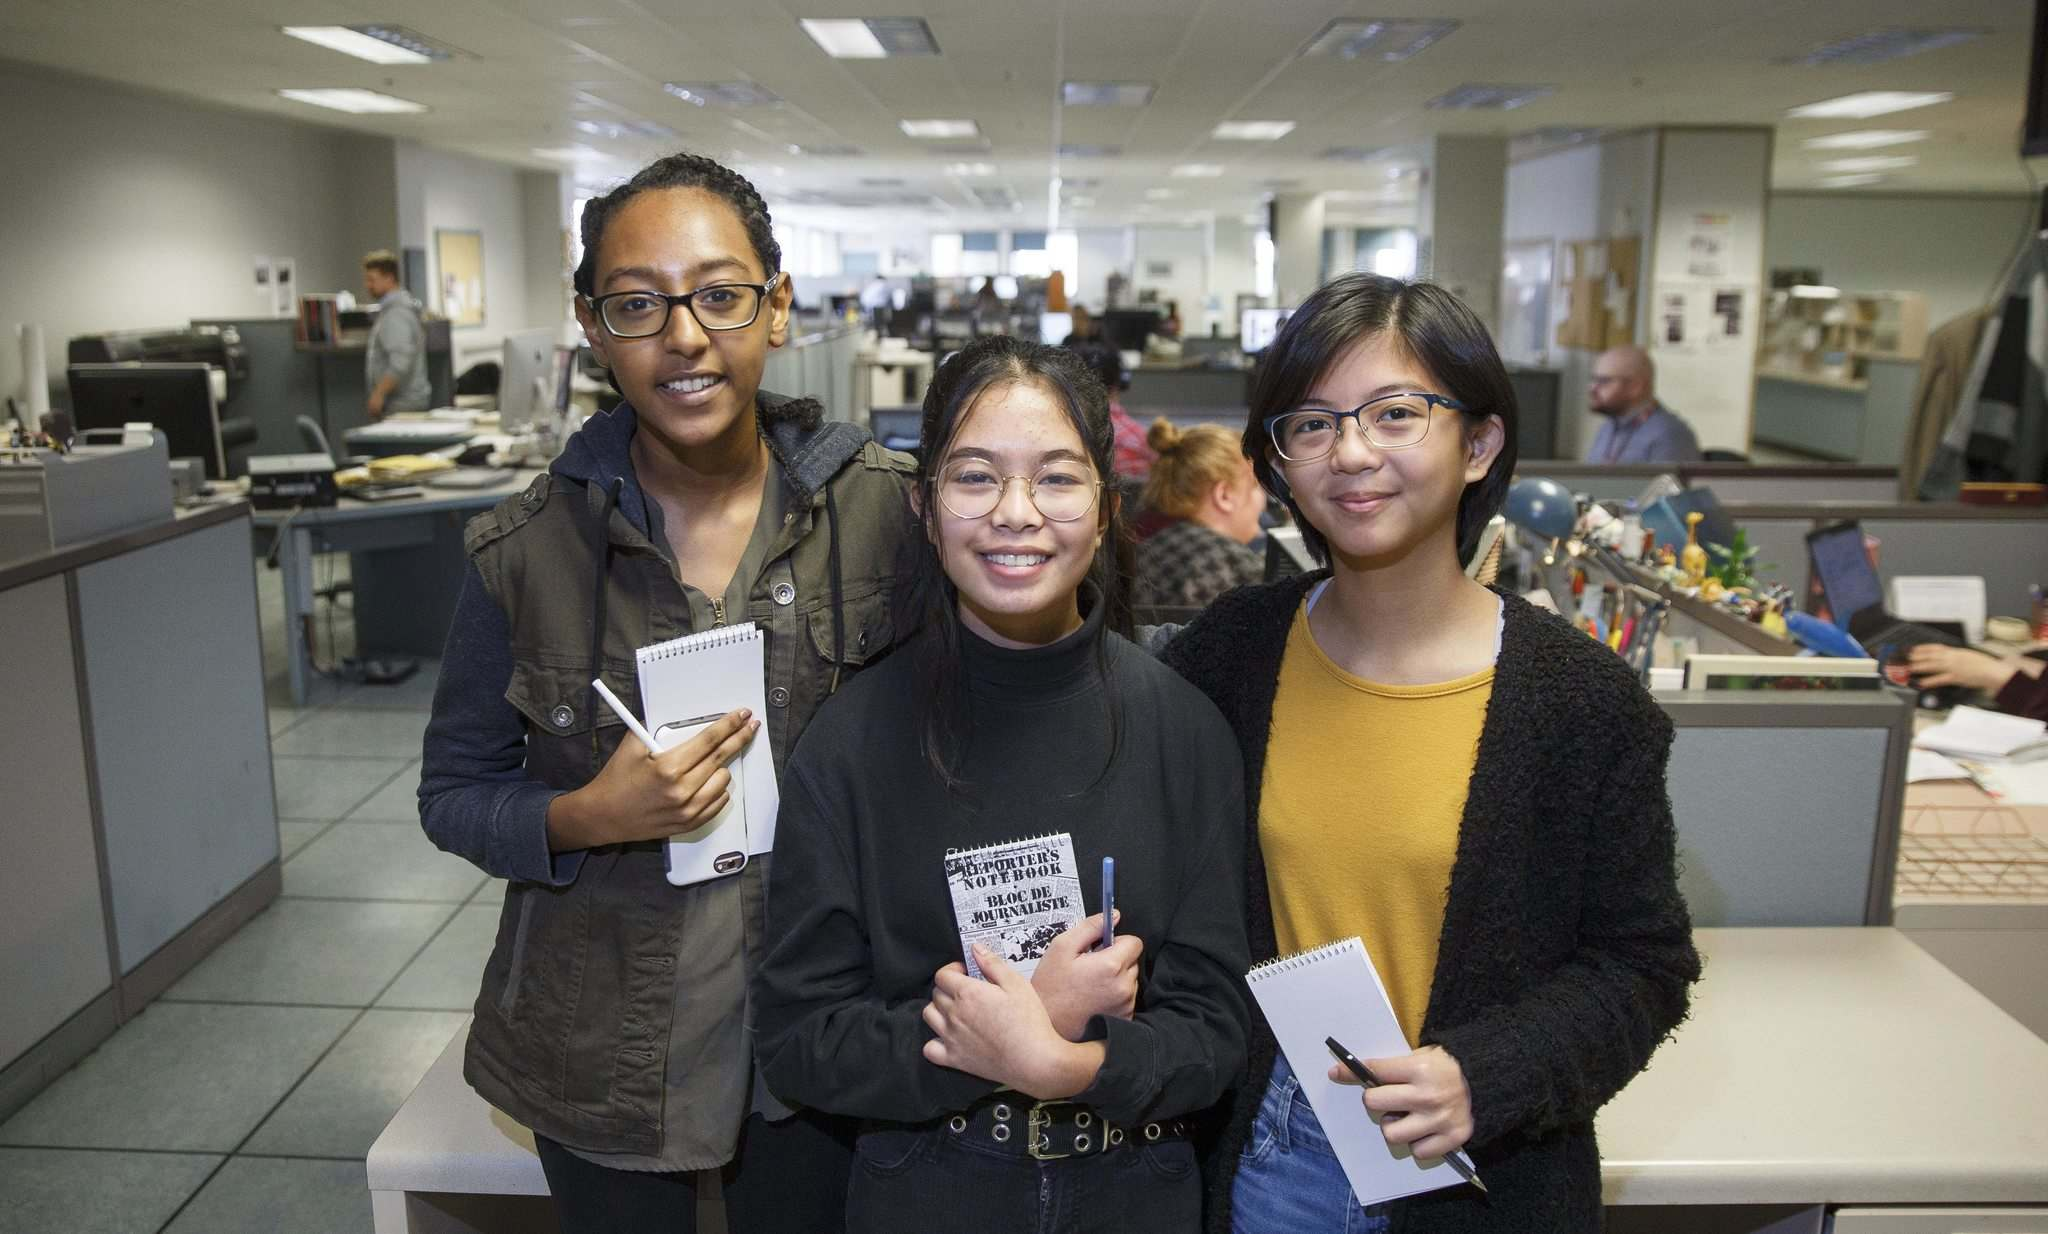 Kalkidan Mulugeta (from left), Alex Payawal, and Rory Ramos are ready to write. (Mike Deal / Winnipeg Free Press)